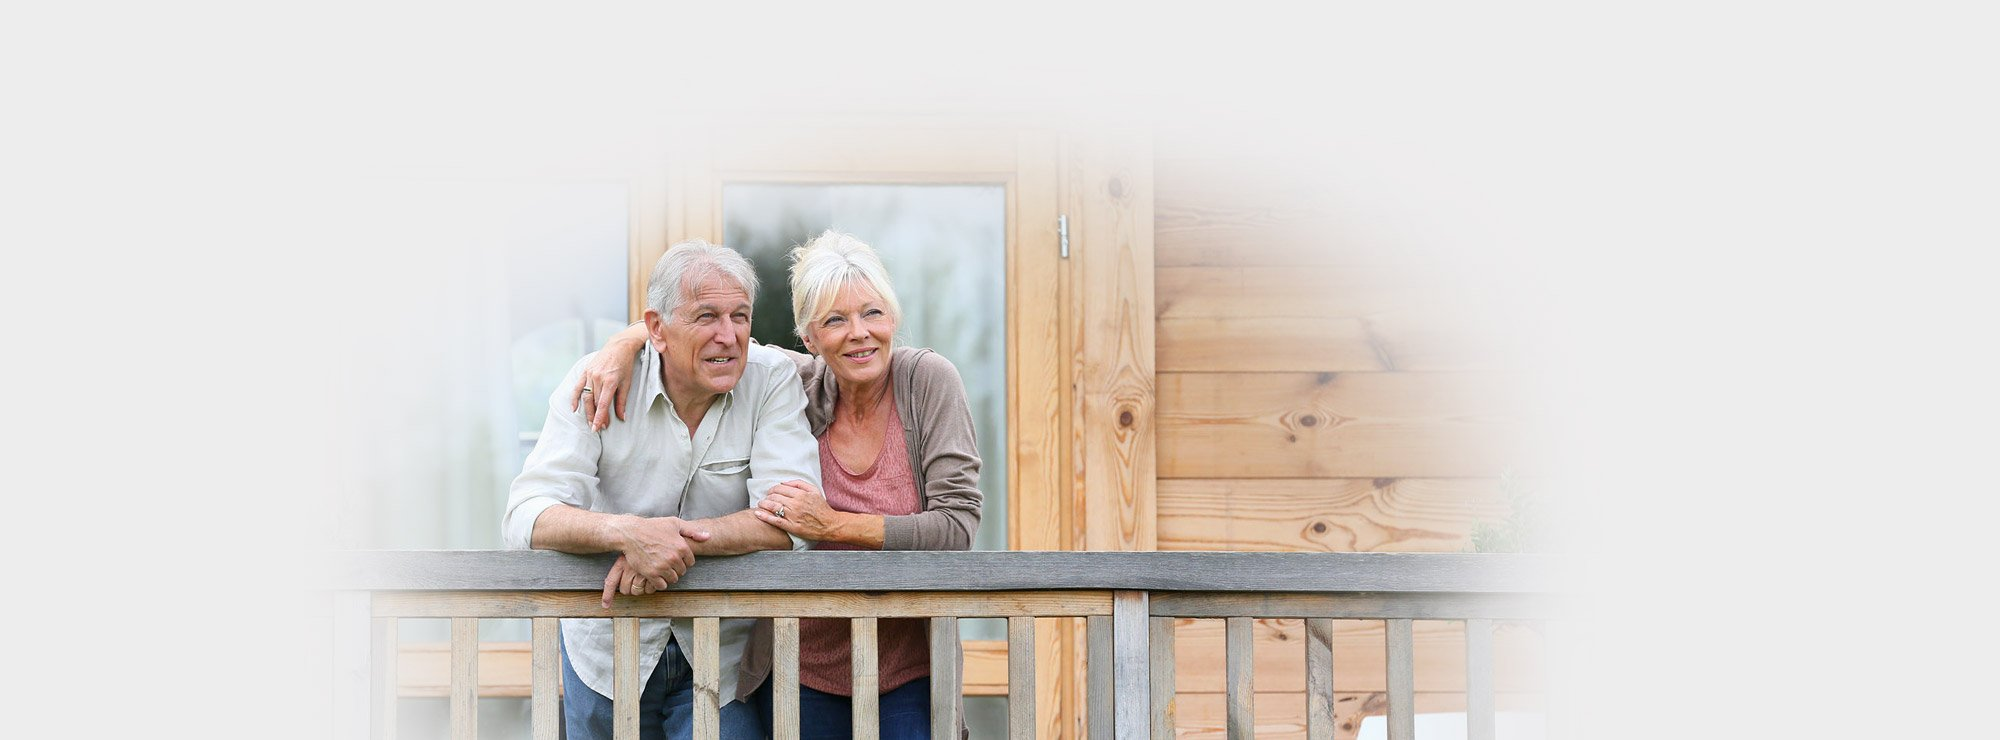 CA Reverse Mortgage Loan Firm